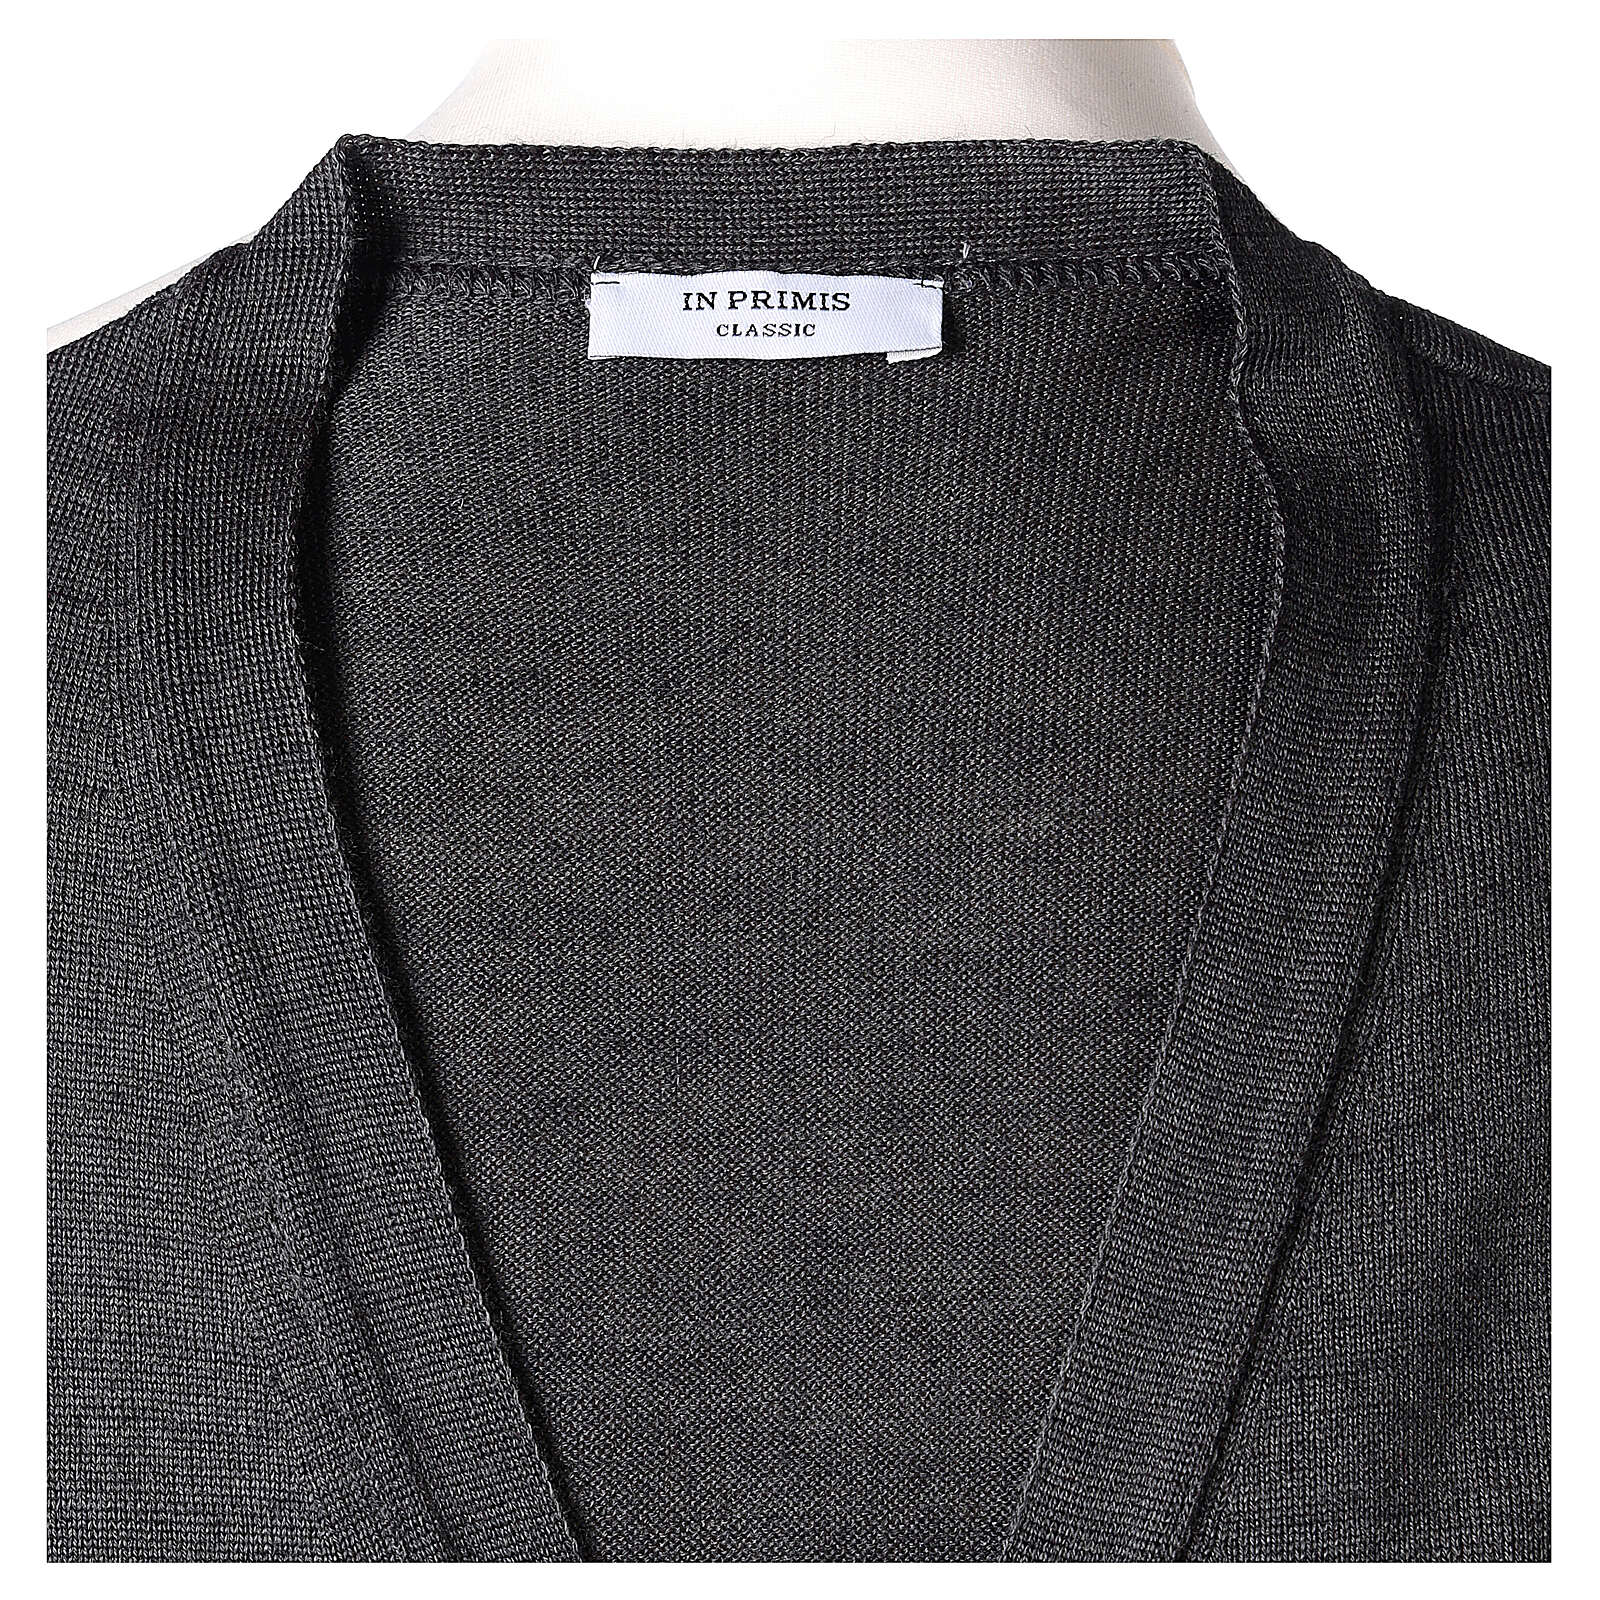 Sleeveless clergy cardigan grey plain knit 50% acrylic 50% merino wool In Primis 4